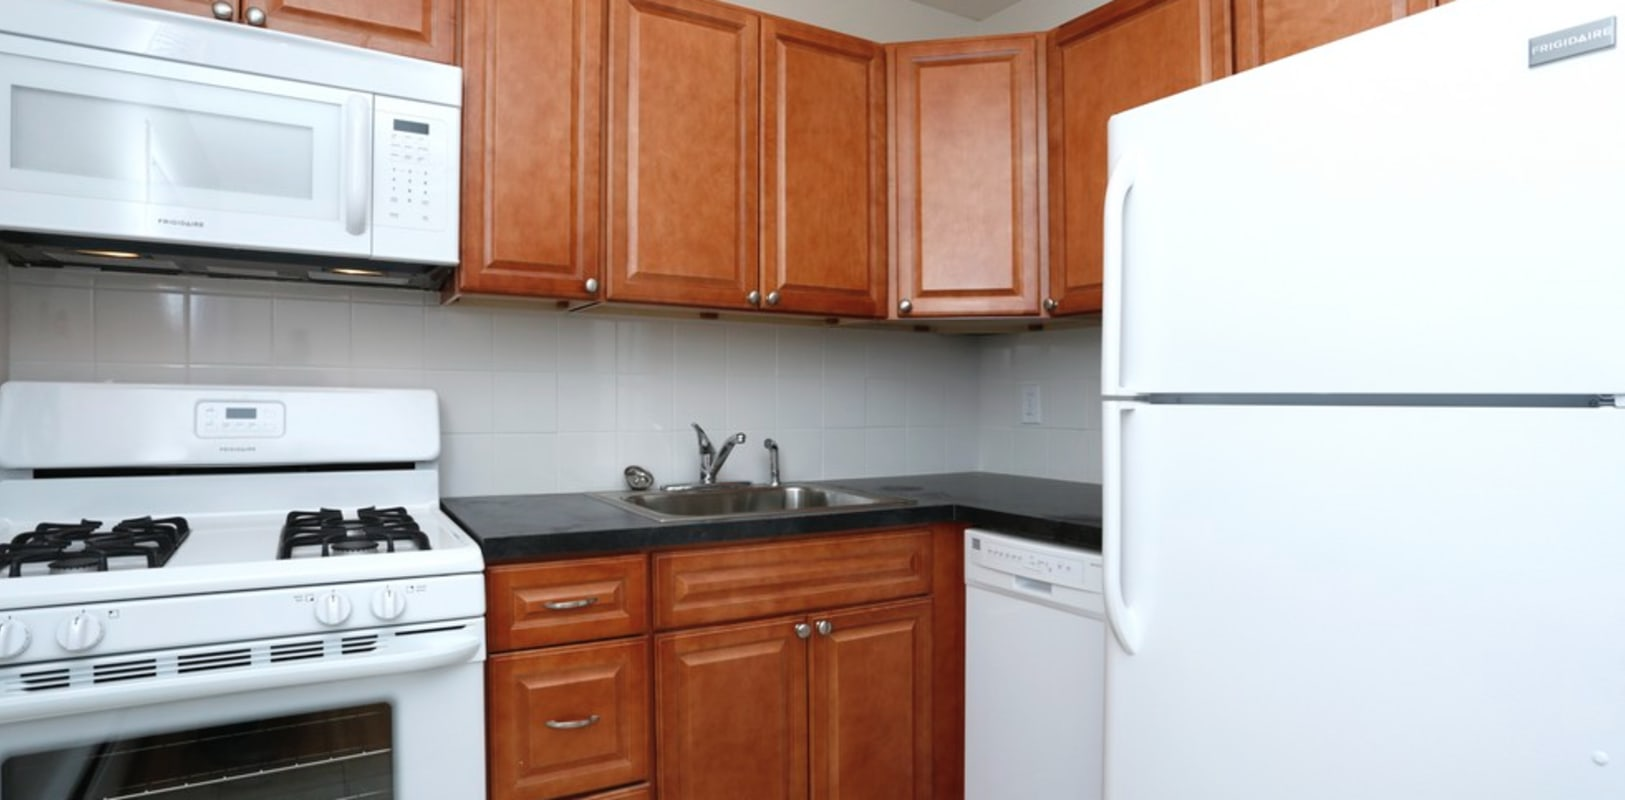 Kitchen at Eastgate Apartments in Ewing, New Jersey